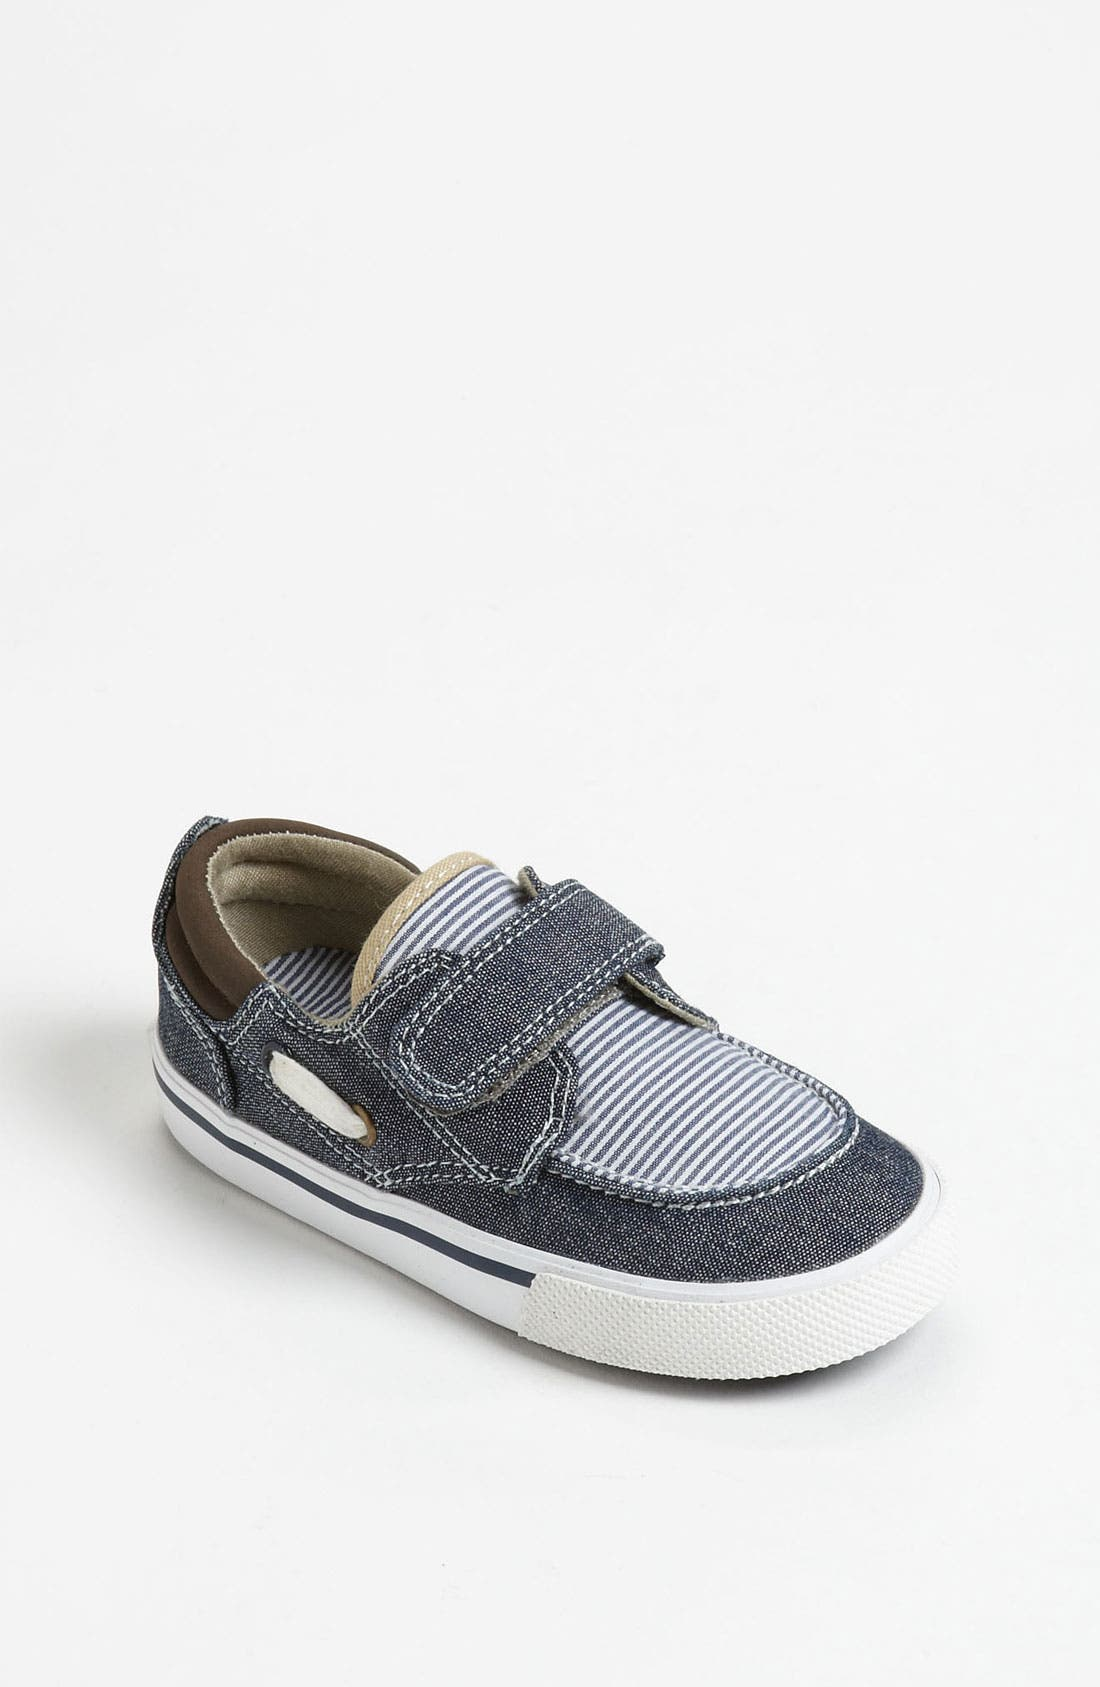 Main Image - Cole Haan 'Air Cory' Boat Shoe (Walker & Toddler)